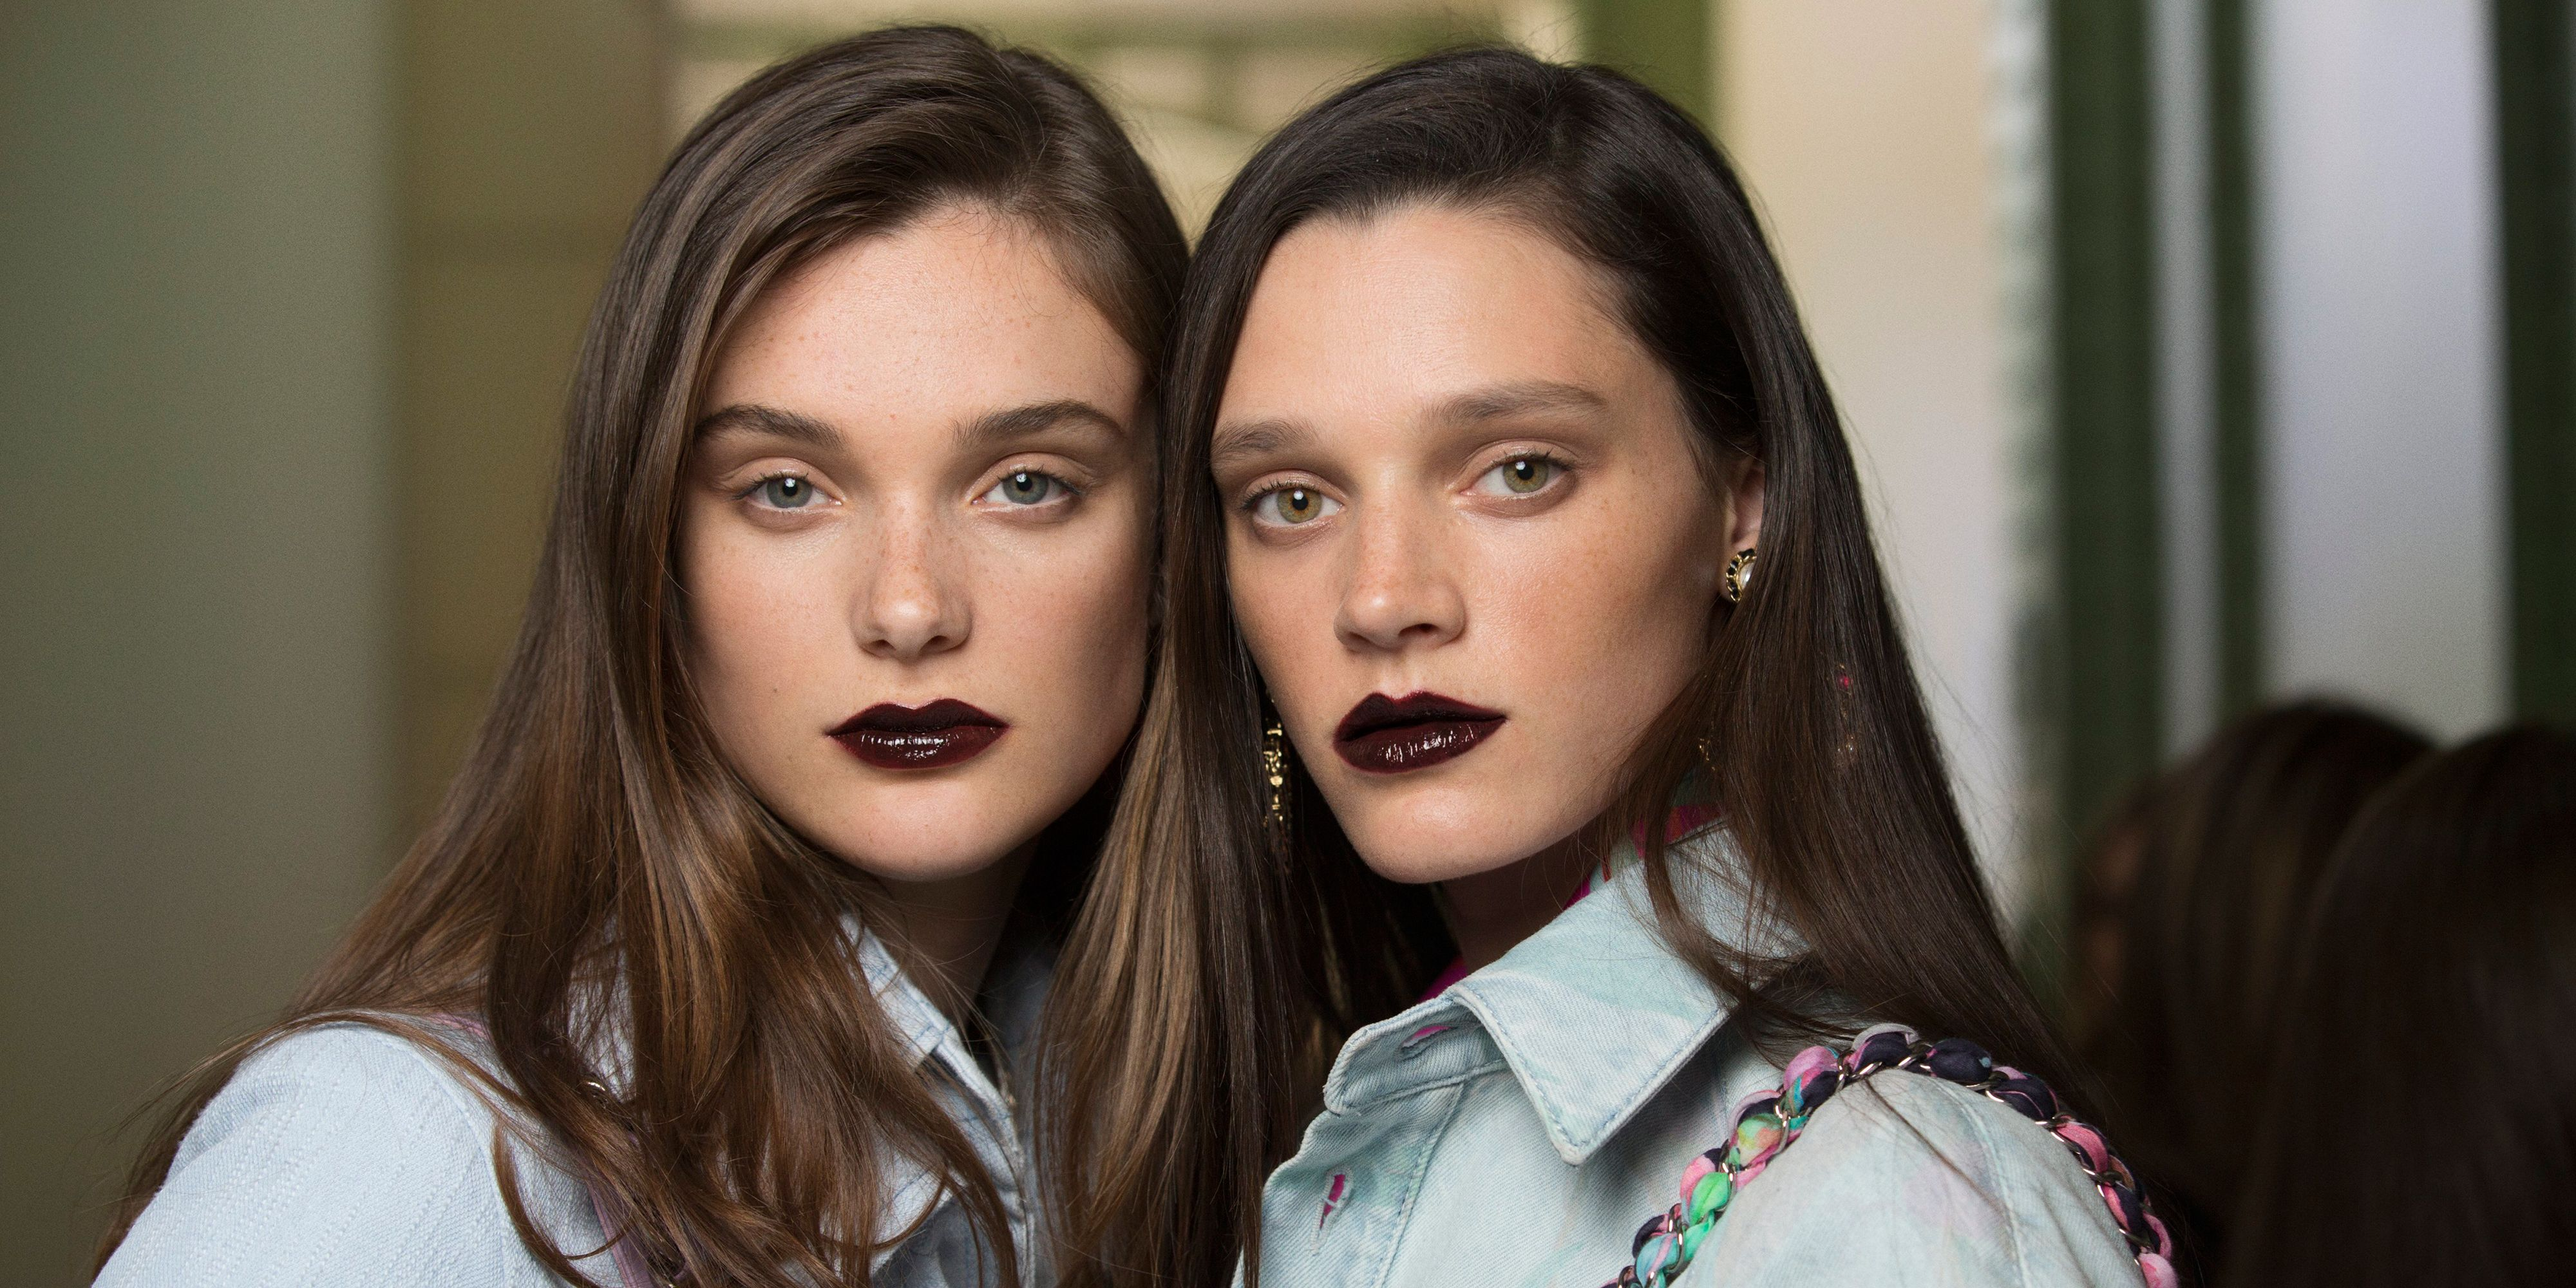 Chanel dark lipstick Cruise Show